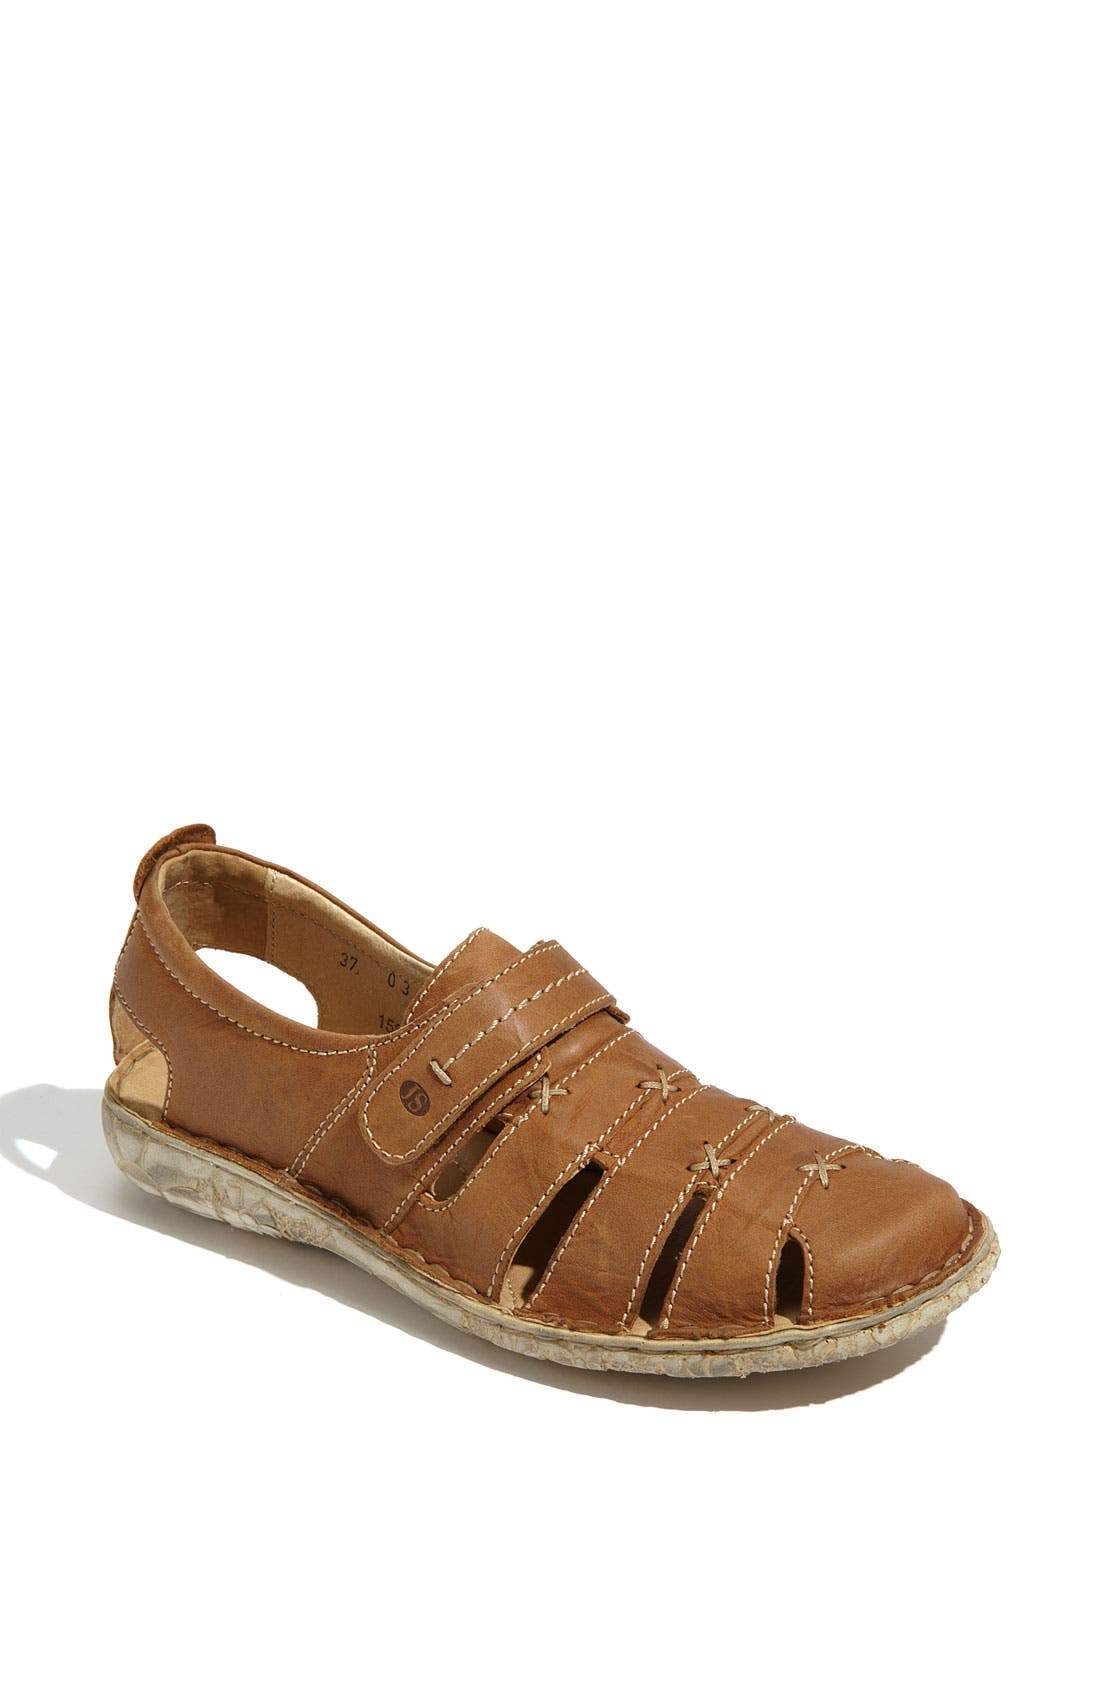 Ida Sandal,                             Main thumbnail 1, color,                             BARK